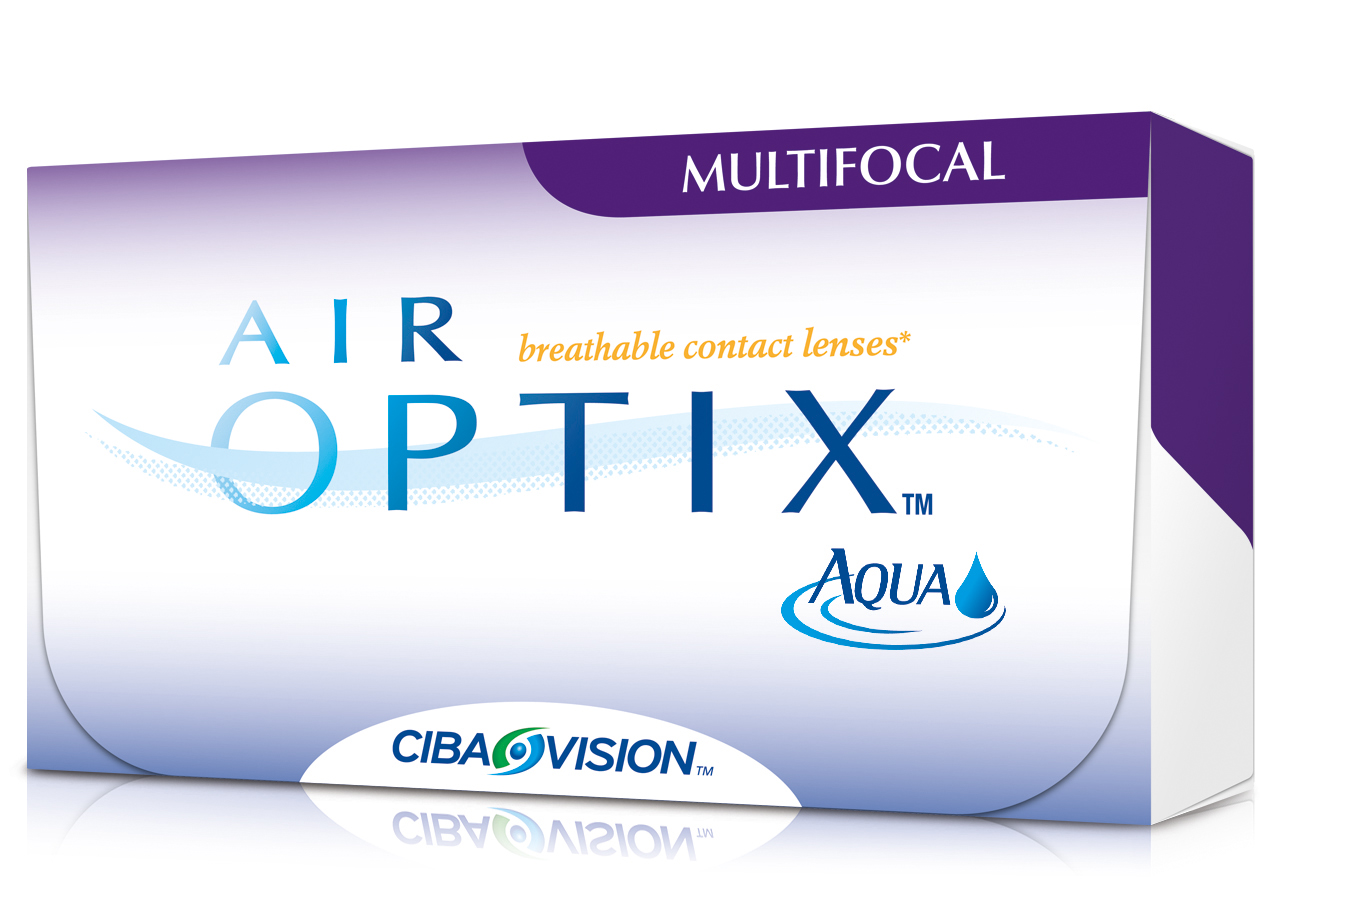 AIR OPTIX AQUA MULTIFOCAL 3pack